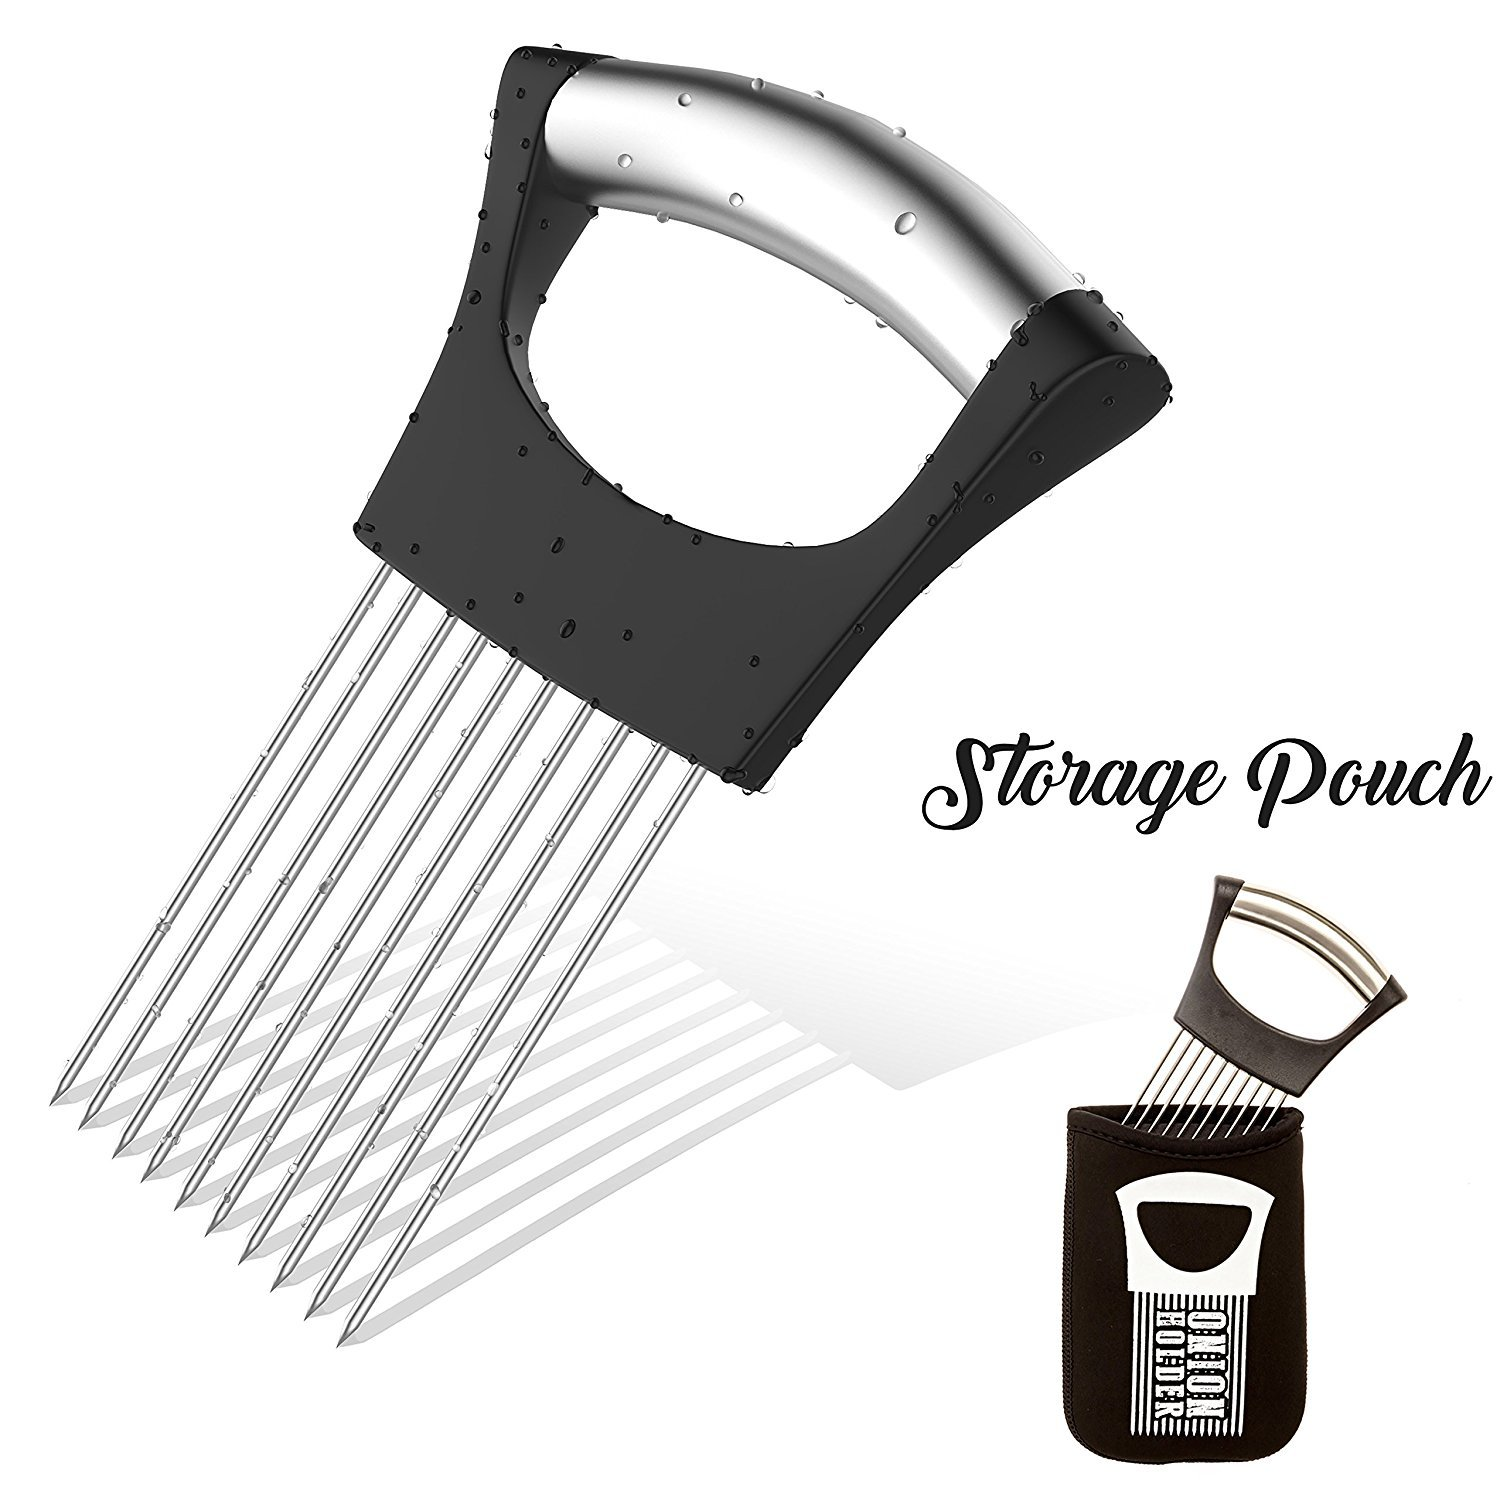 Onion Holder For Slicing | STORAGE POUCH INCLUDED | Vegetable Potato Cutter Slicer | FULL GRIP HANDLE | Odor Eliminator | Stainless Steel Cutting Kitchen Gadget | Onion Peeler | Onion Storage